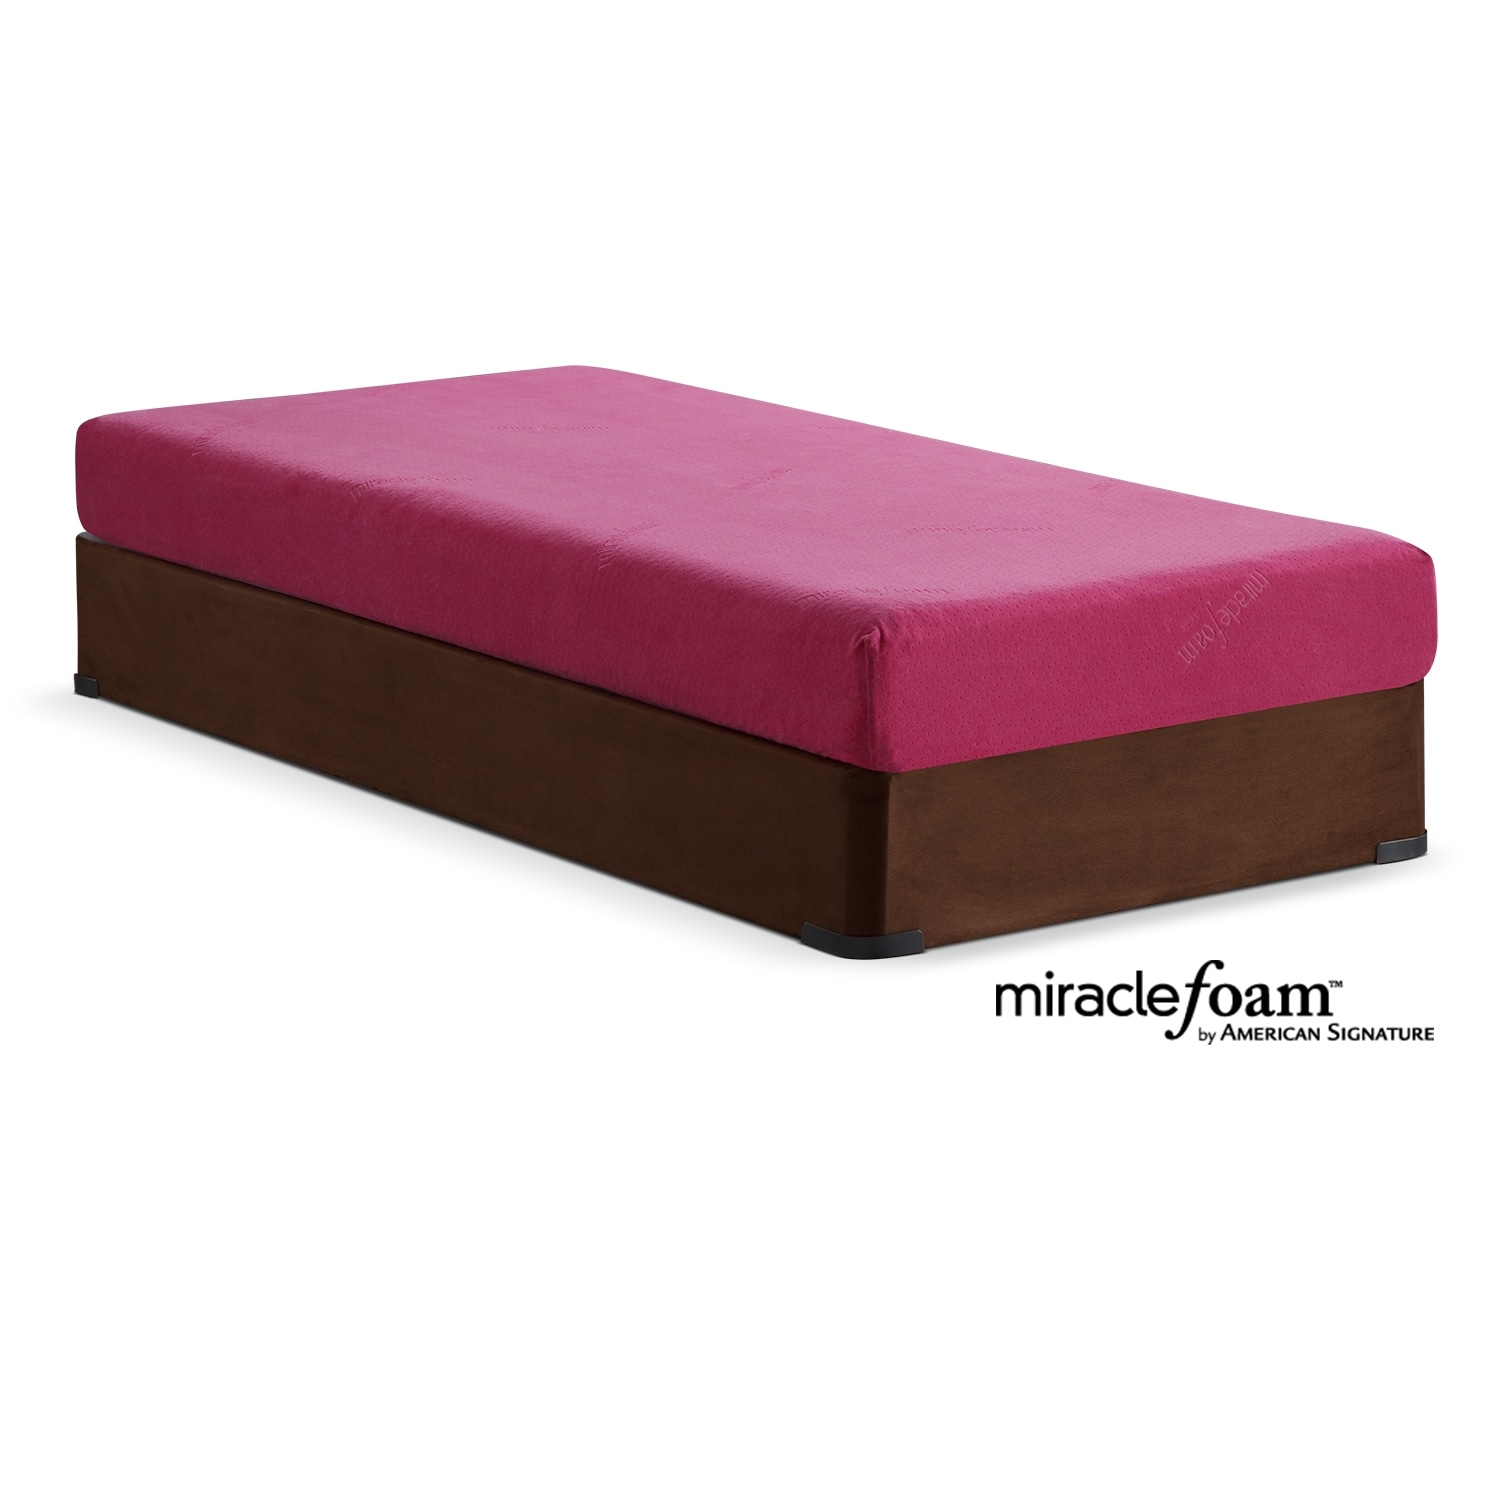 Mattresses and Bedding - Renew Pink Twin Mattress and Foundation Set